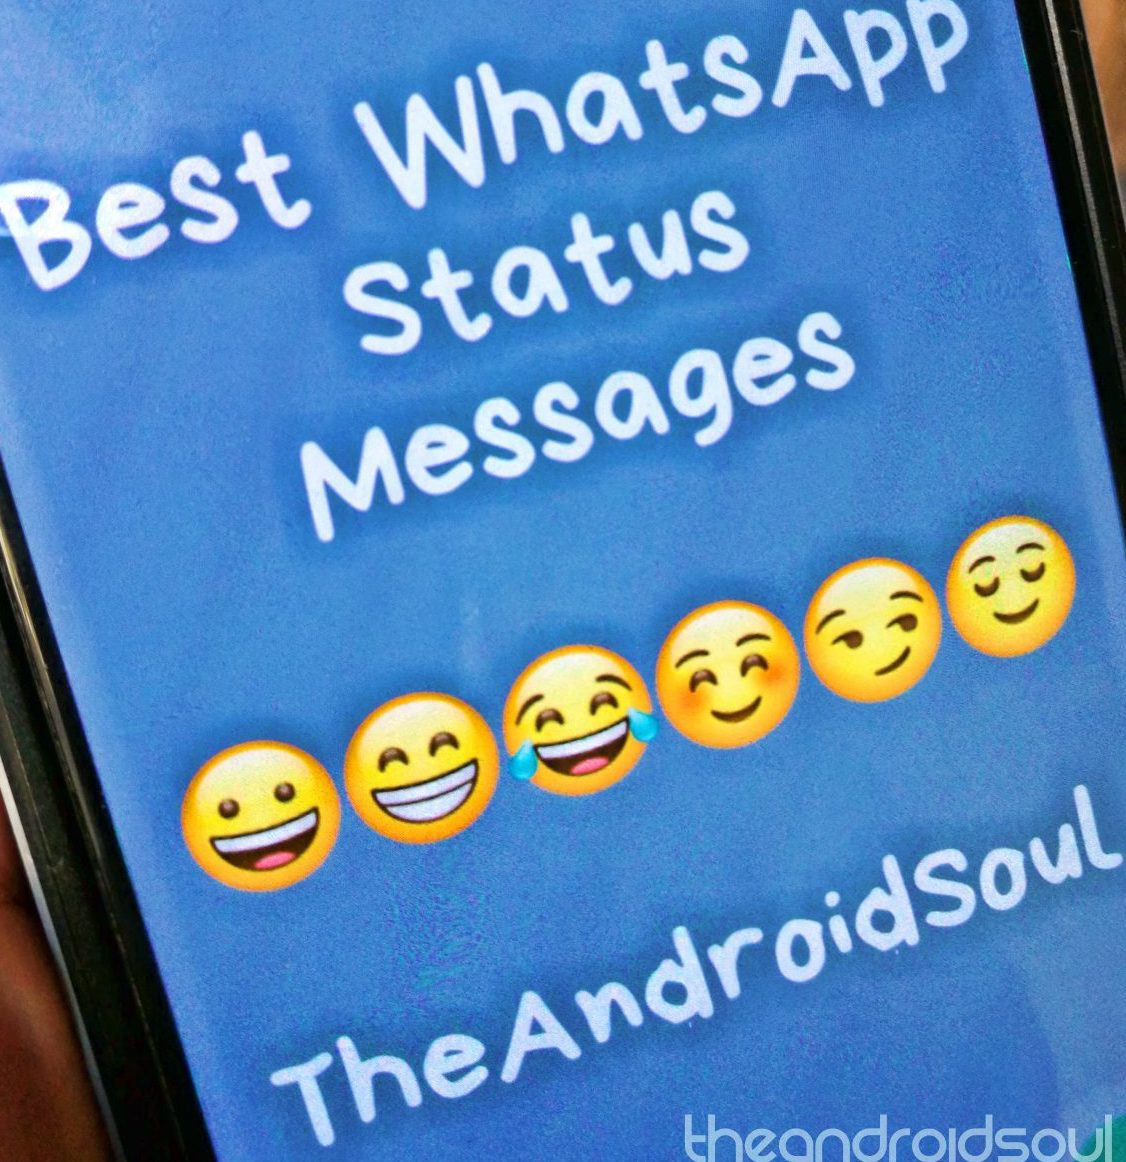 Top Whatsapp Status Messages Funny Sad Romantic And